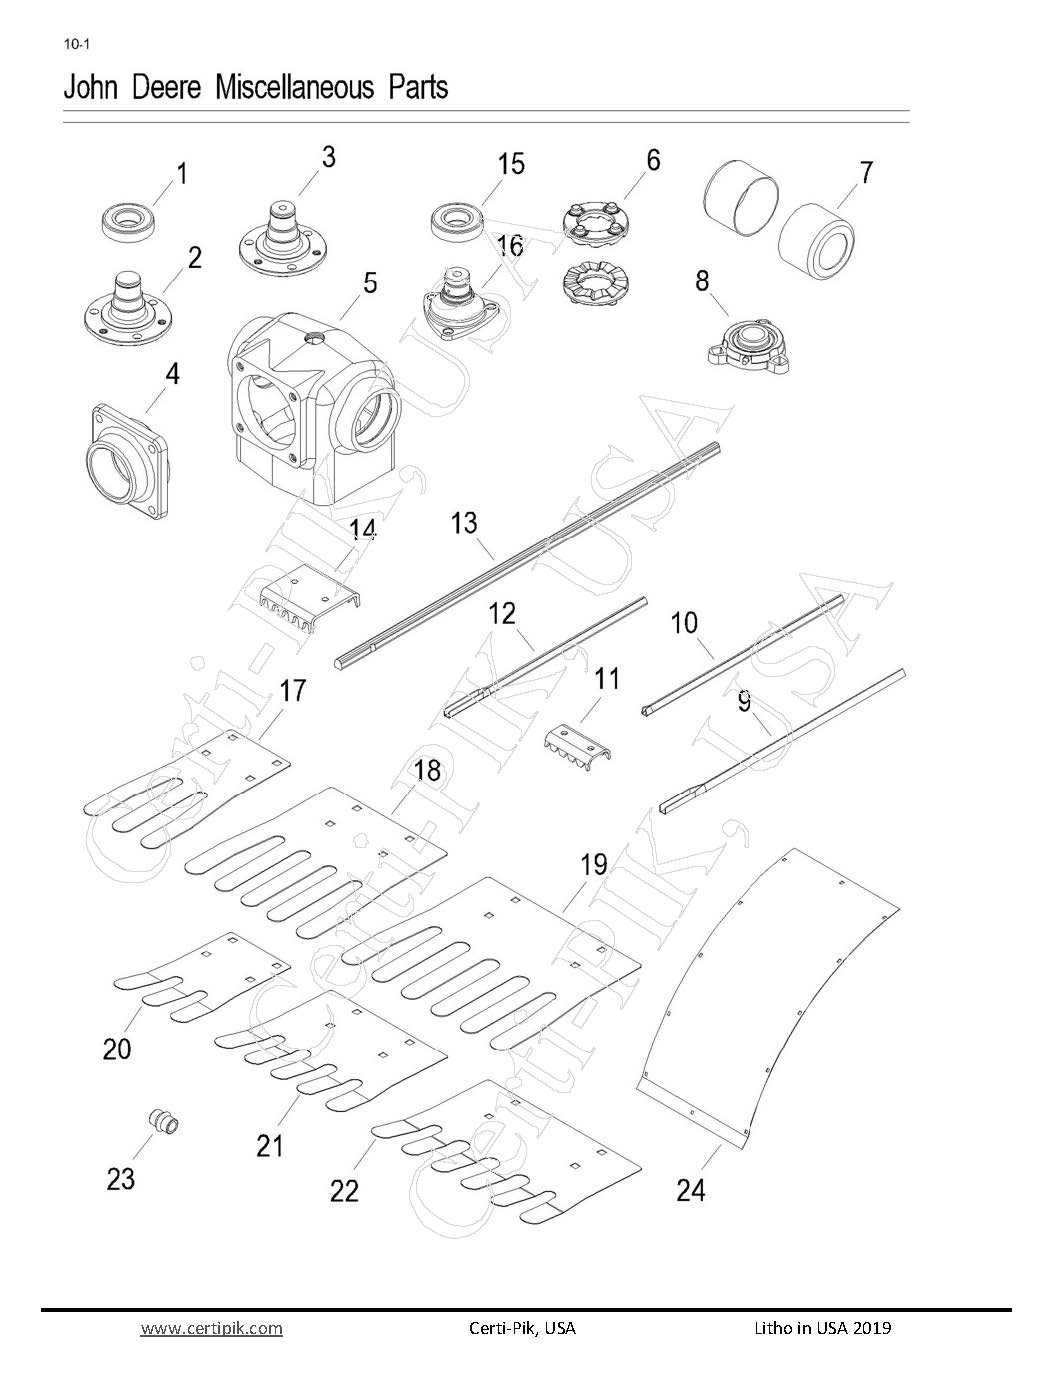 31824-10 - John Deere Miscellaneous Parts